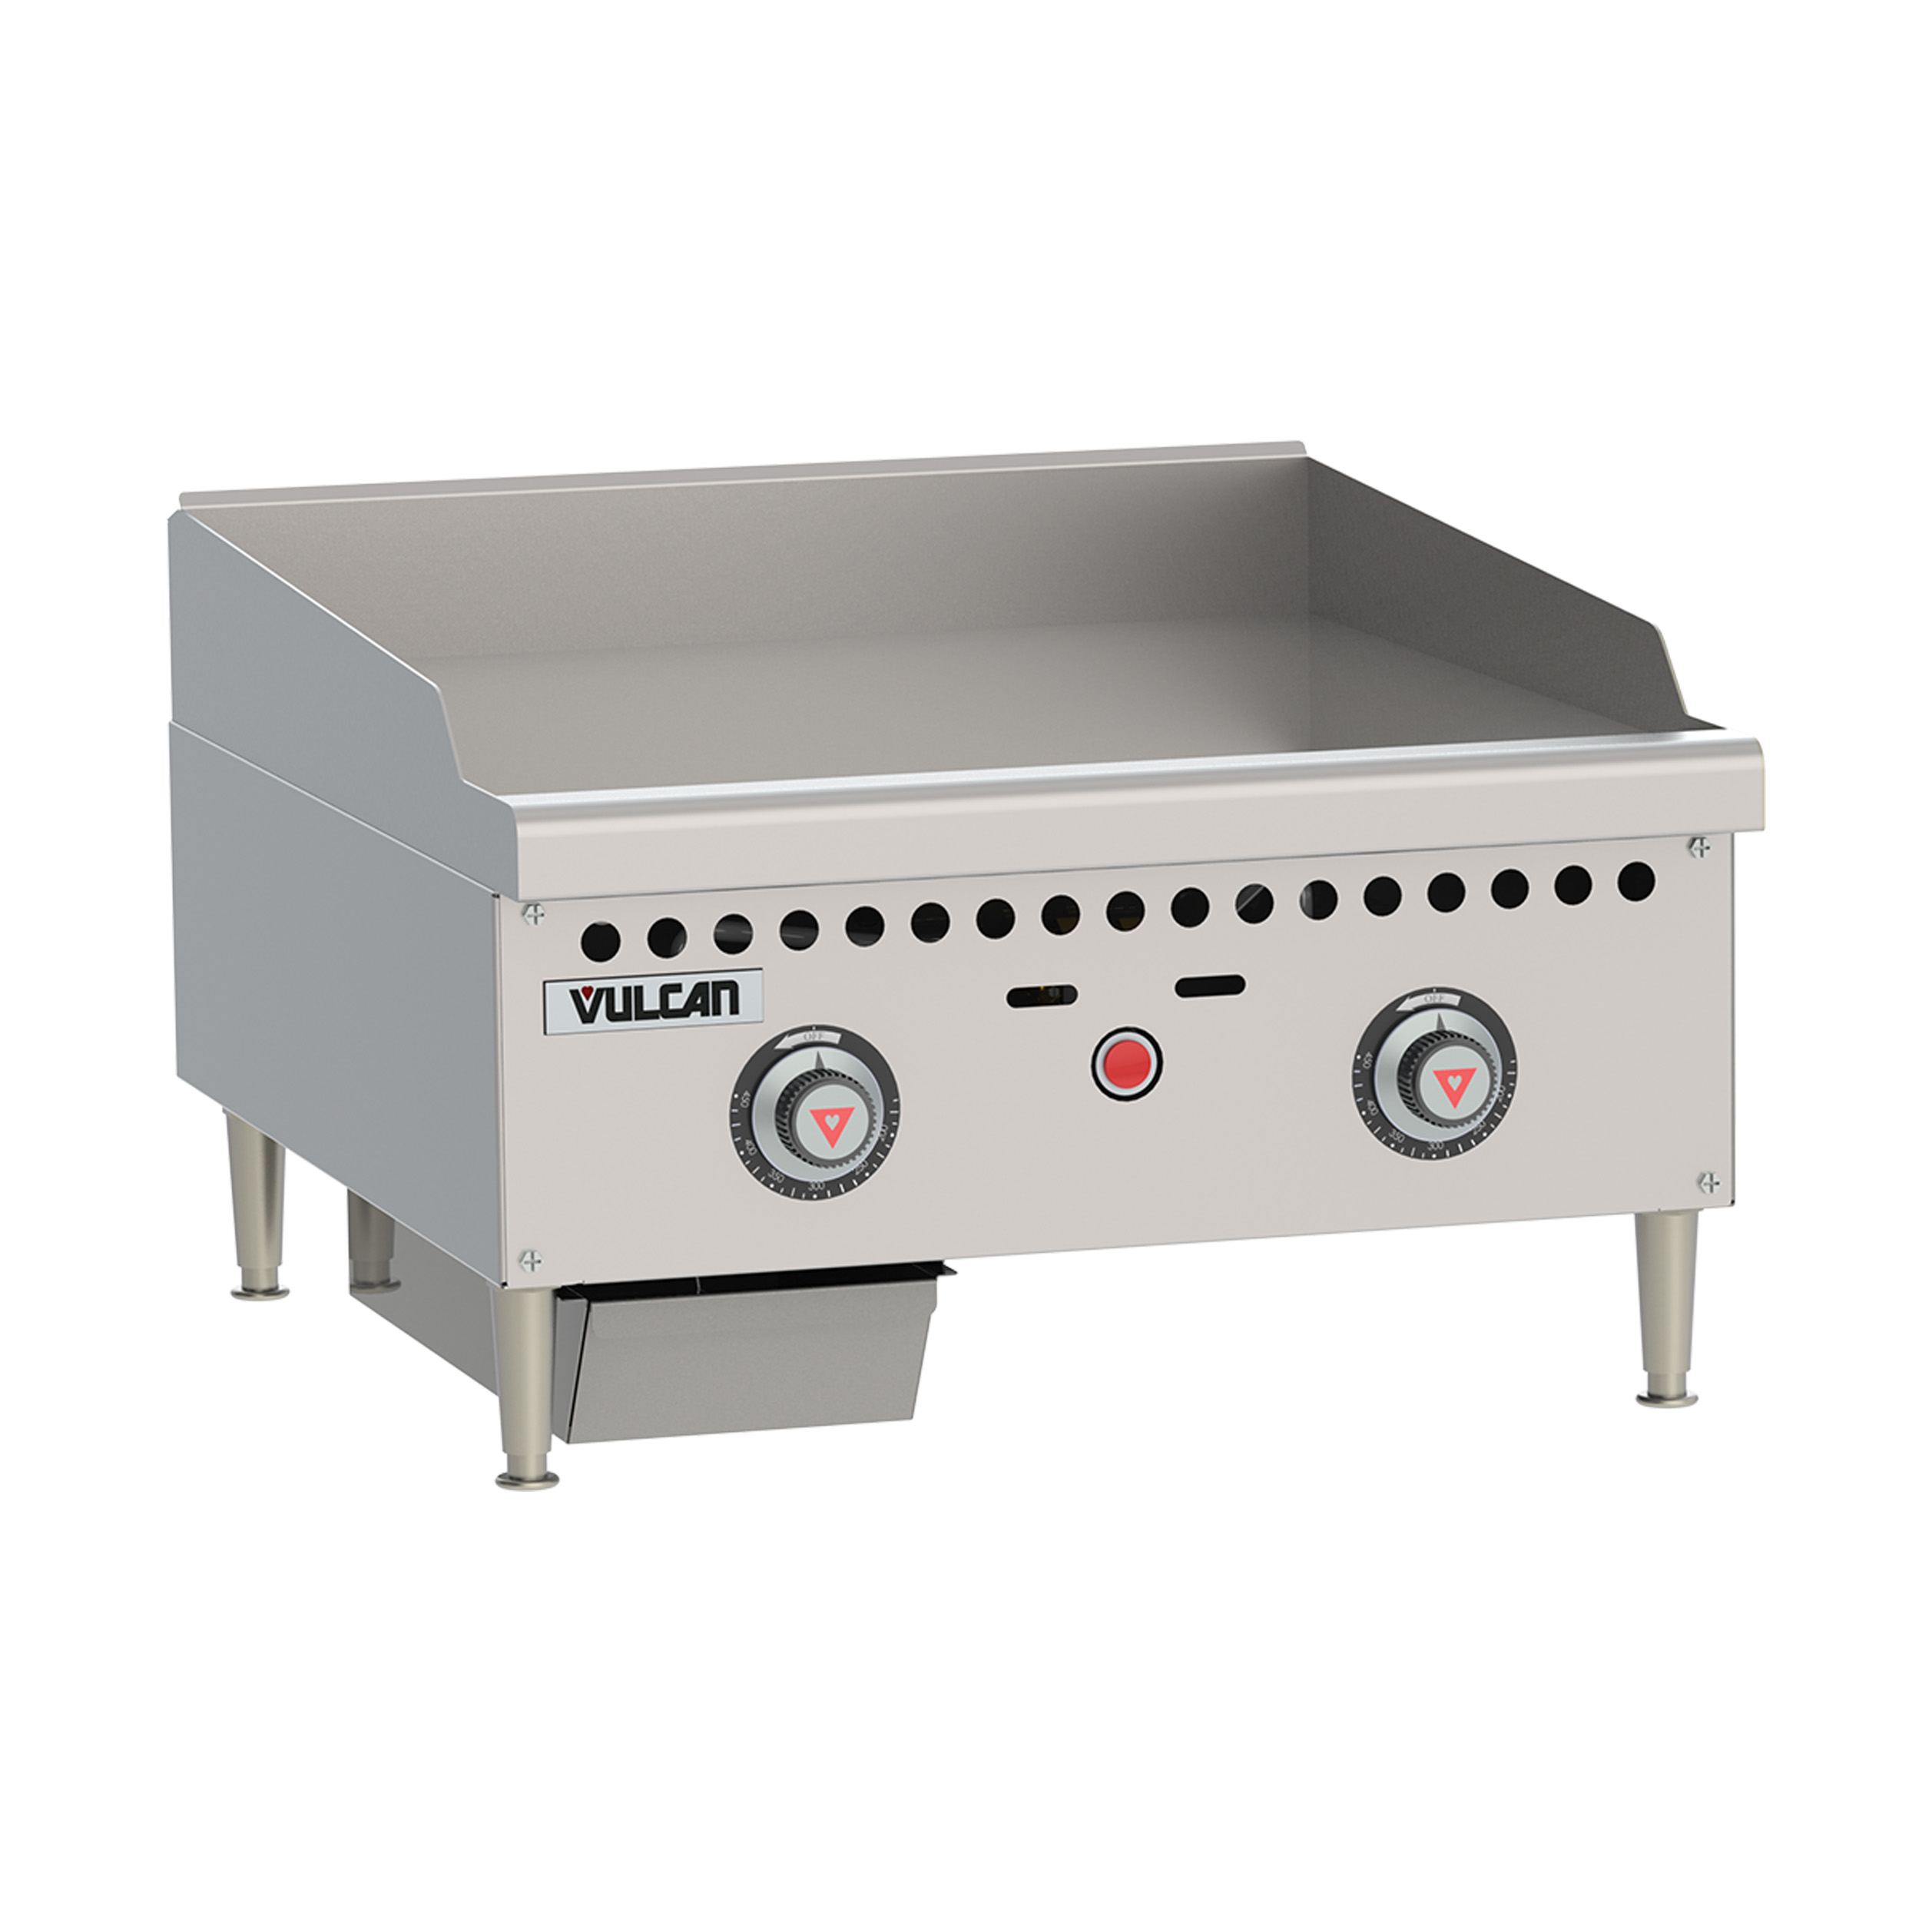 "GRIDDLE COUNTERTOP GAS 48""W VULCAN VCRG48-T1"